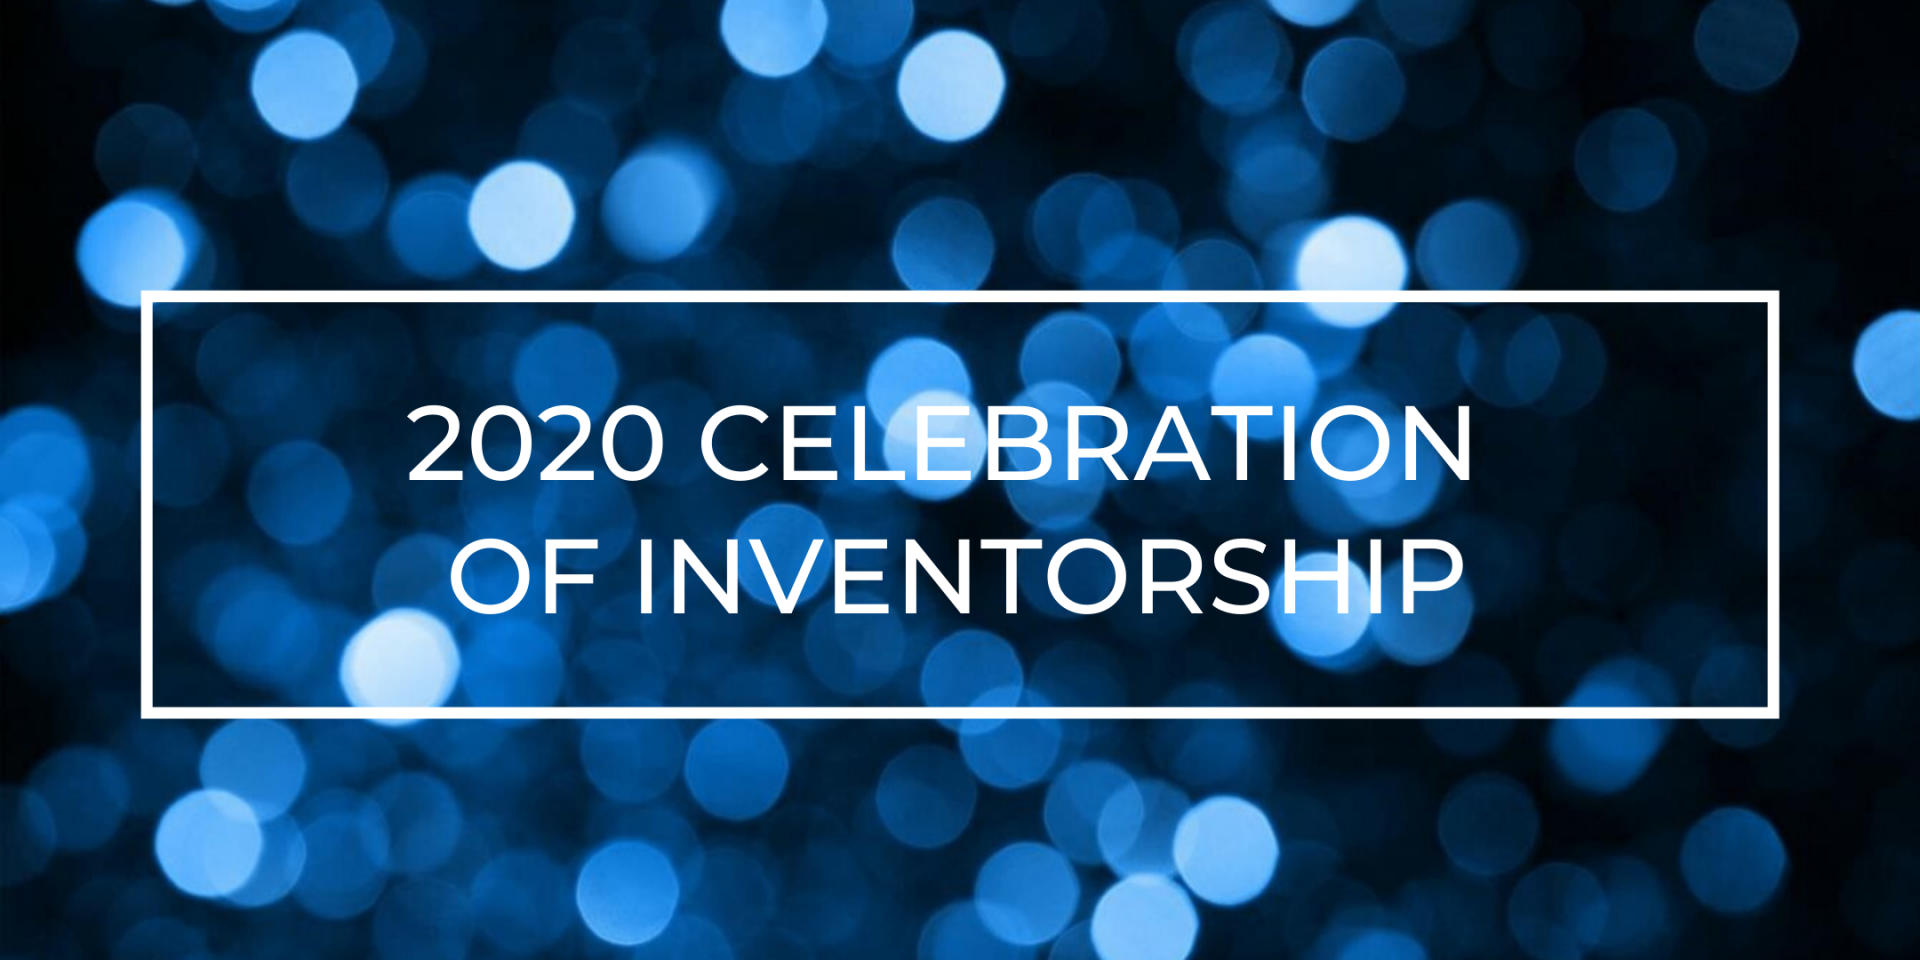 2020-Celebration-of-Inventorship